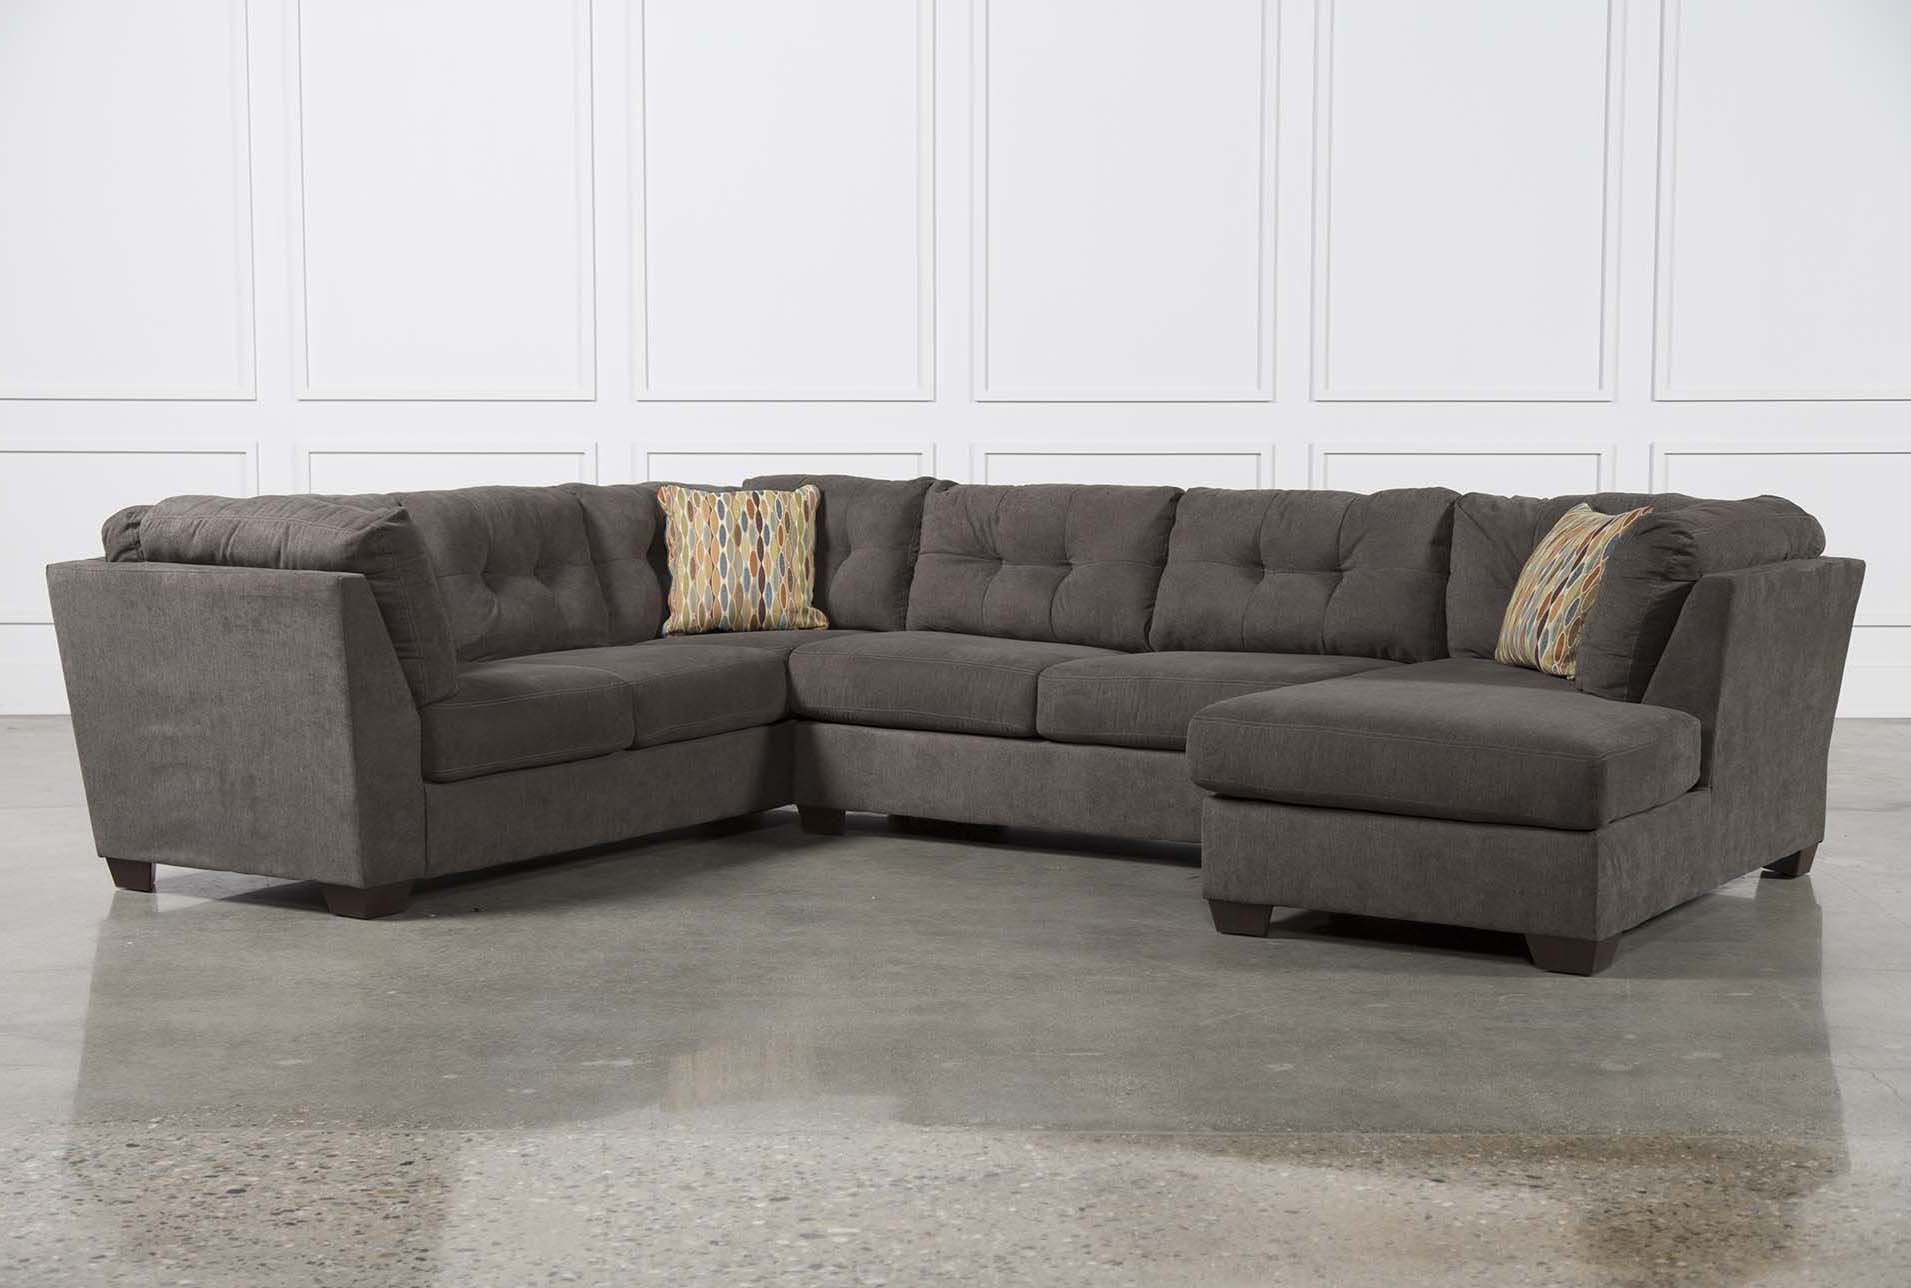 Rayna 2 Piece Sectional - Main | Dream House Remodel | Pinterest | House remodeling Sectional sofa and Consoles : zella sectional canada - Sectionals, Sofas & Couches